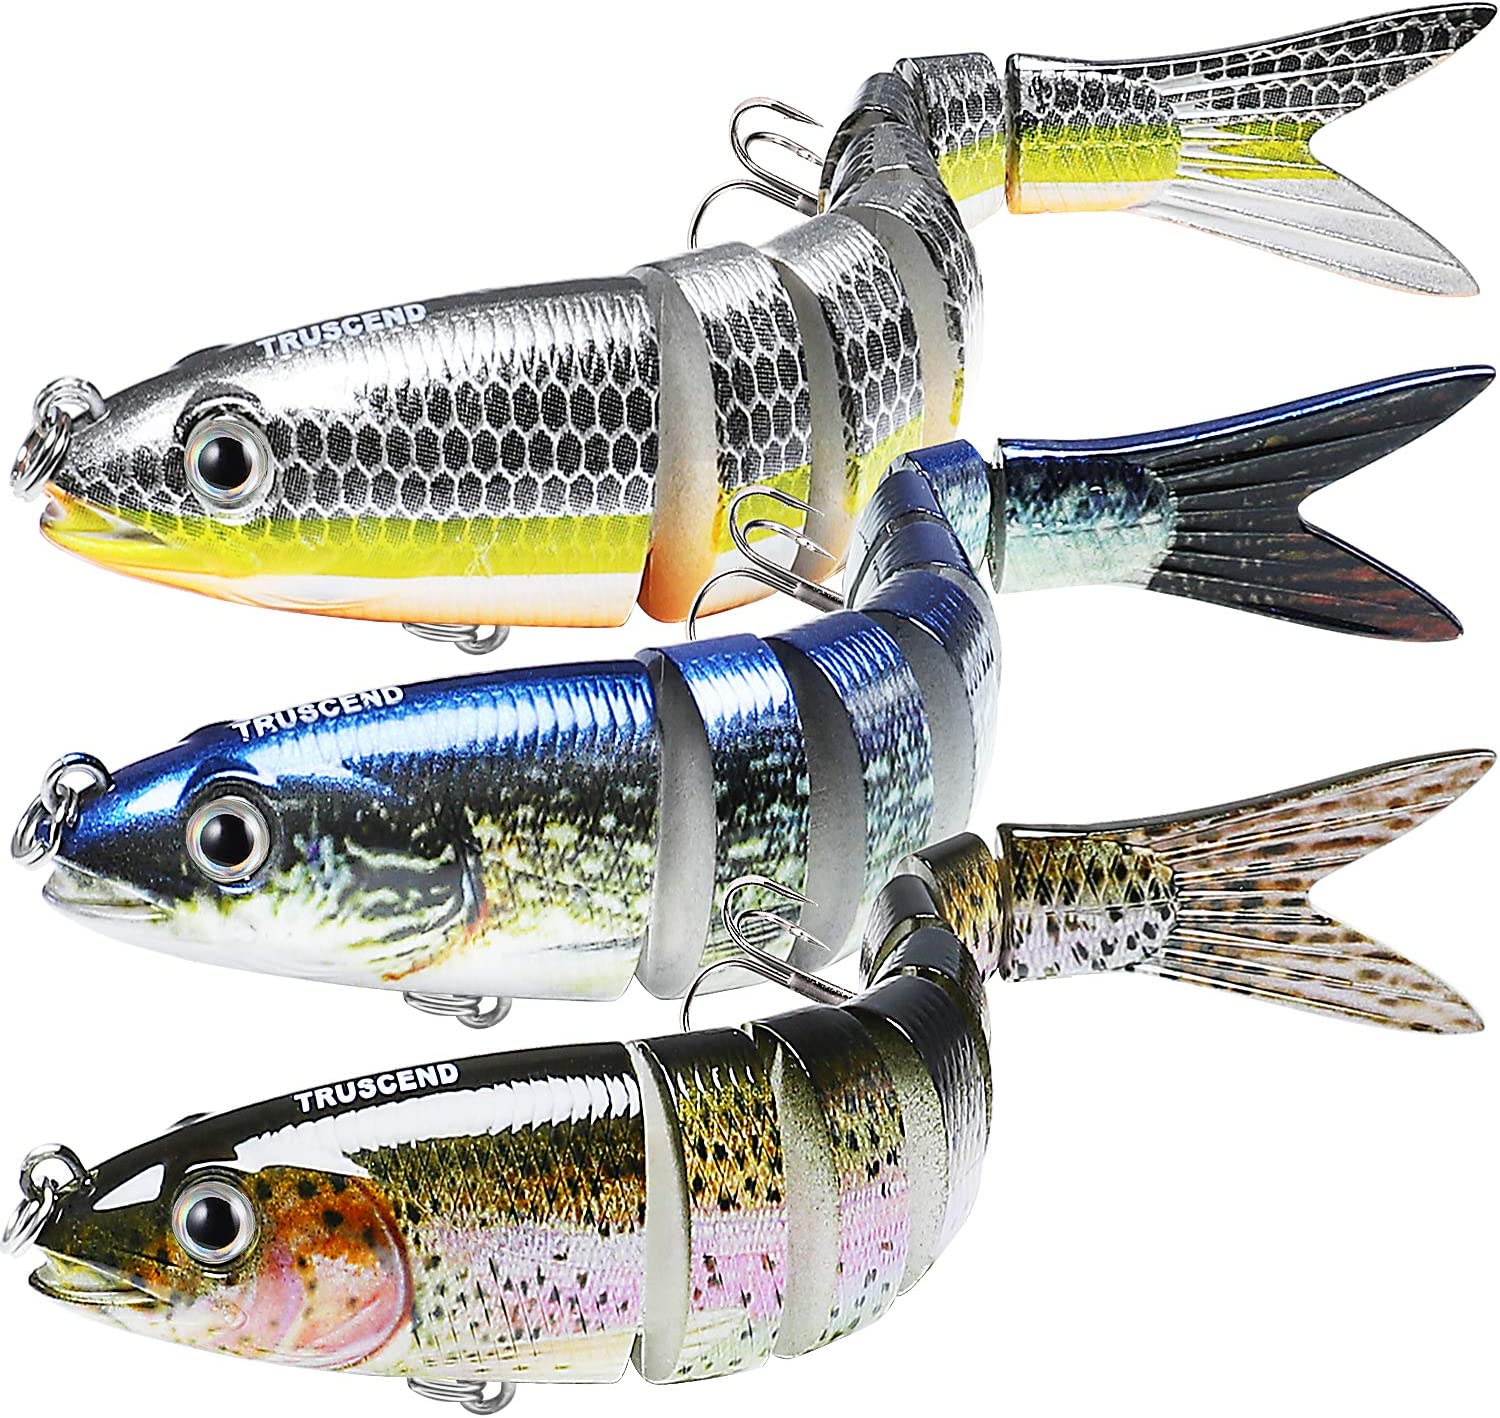 TRUSCEND Fishing Lures for Snook Fish